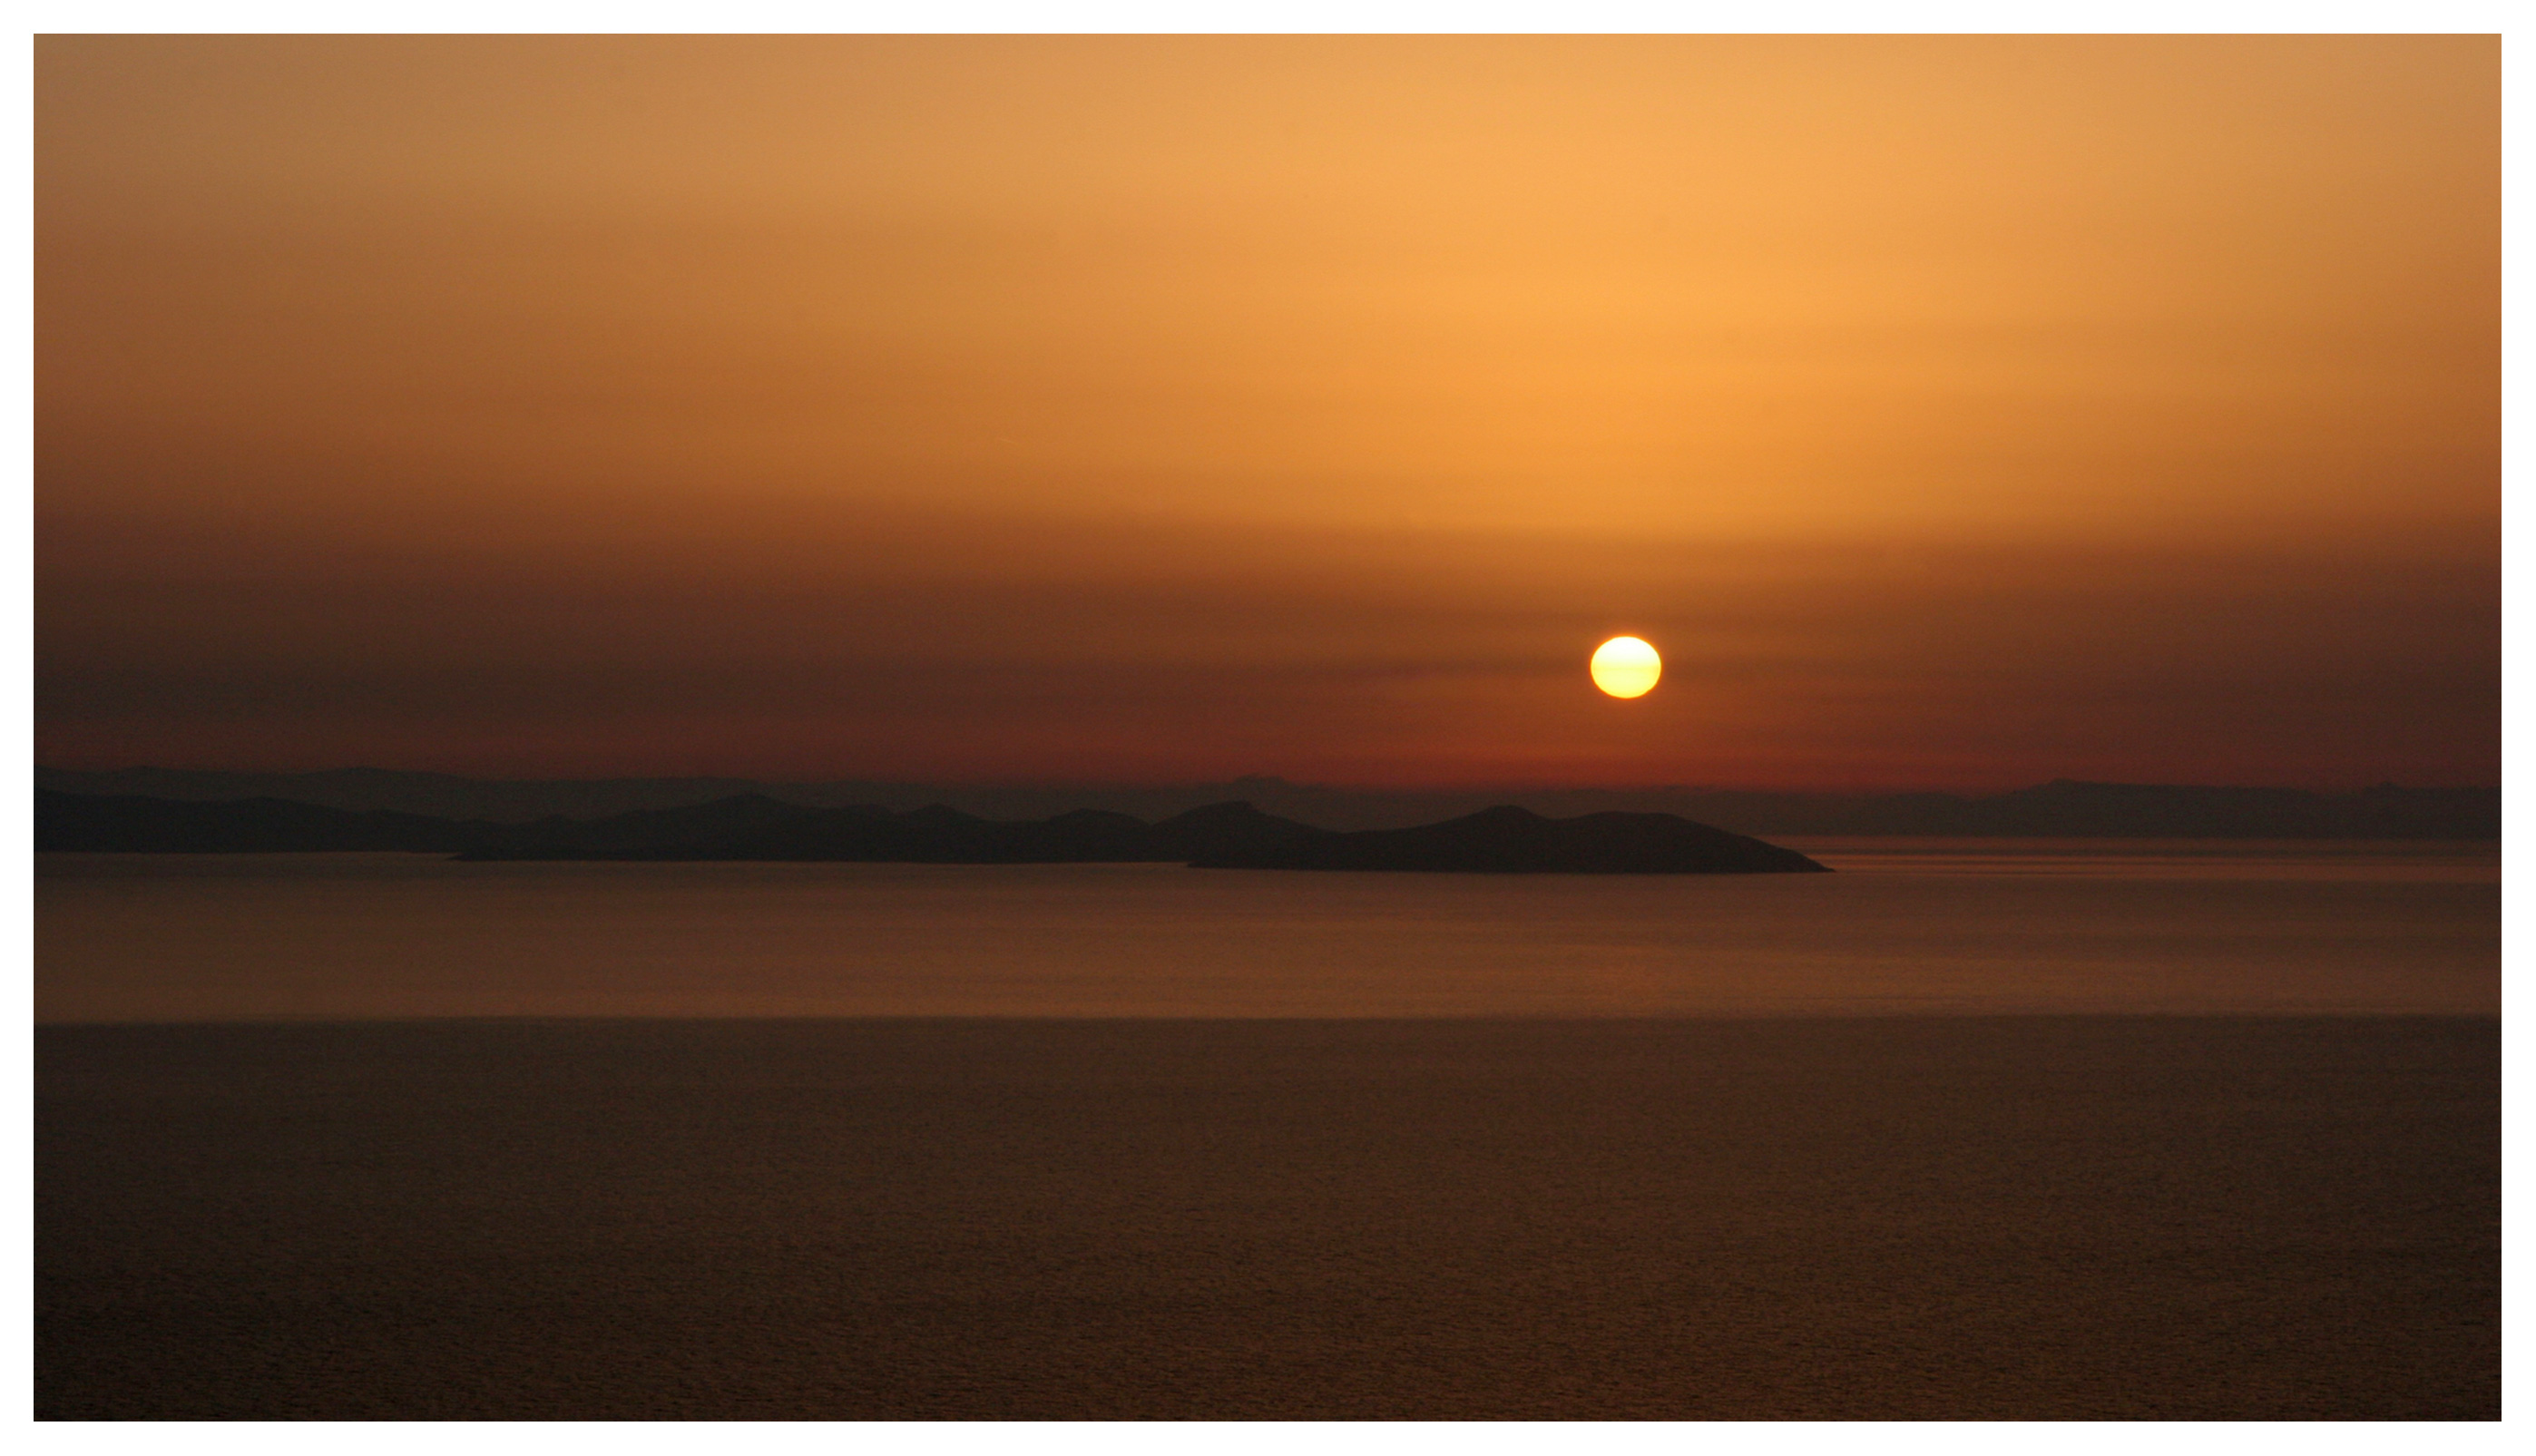 Yachting photography, Greek islands, Cyclades. Glorious sunrise at Sifnos looking eastwards to Antiparos and Paros